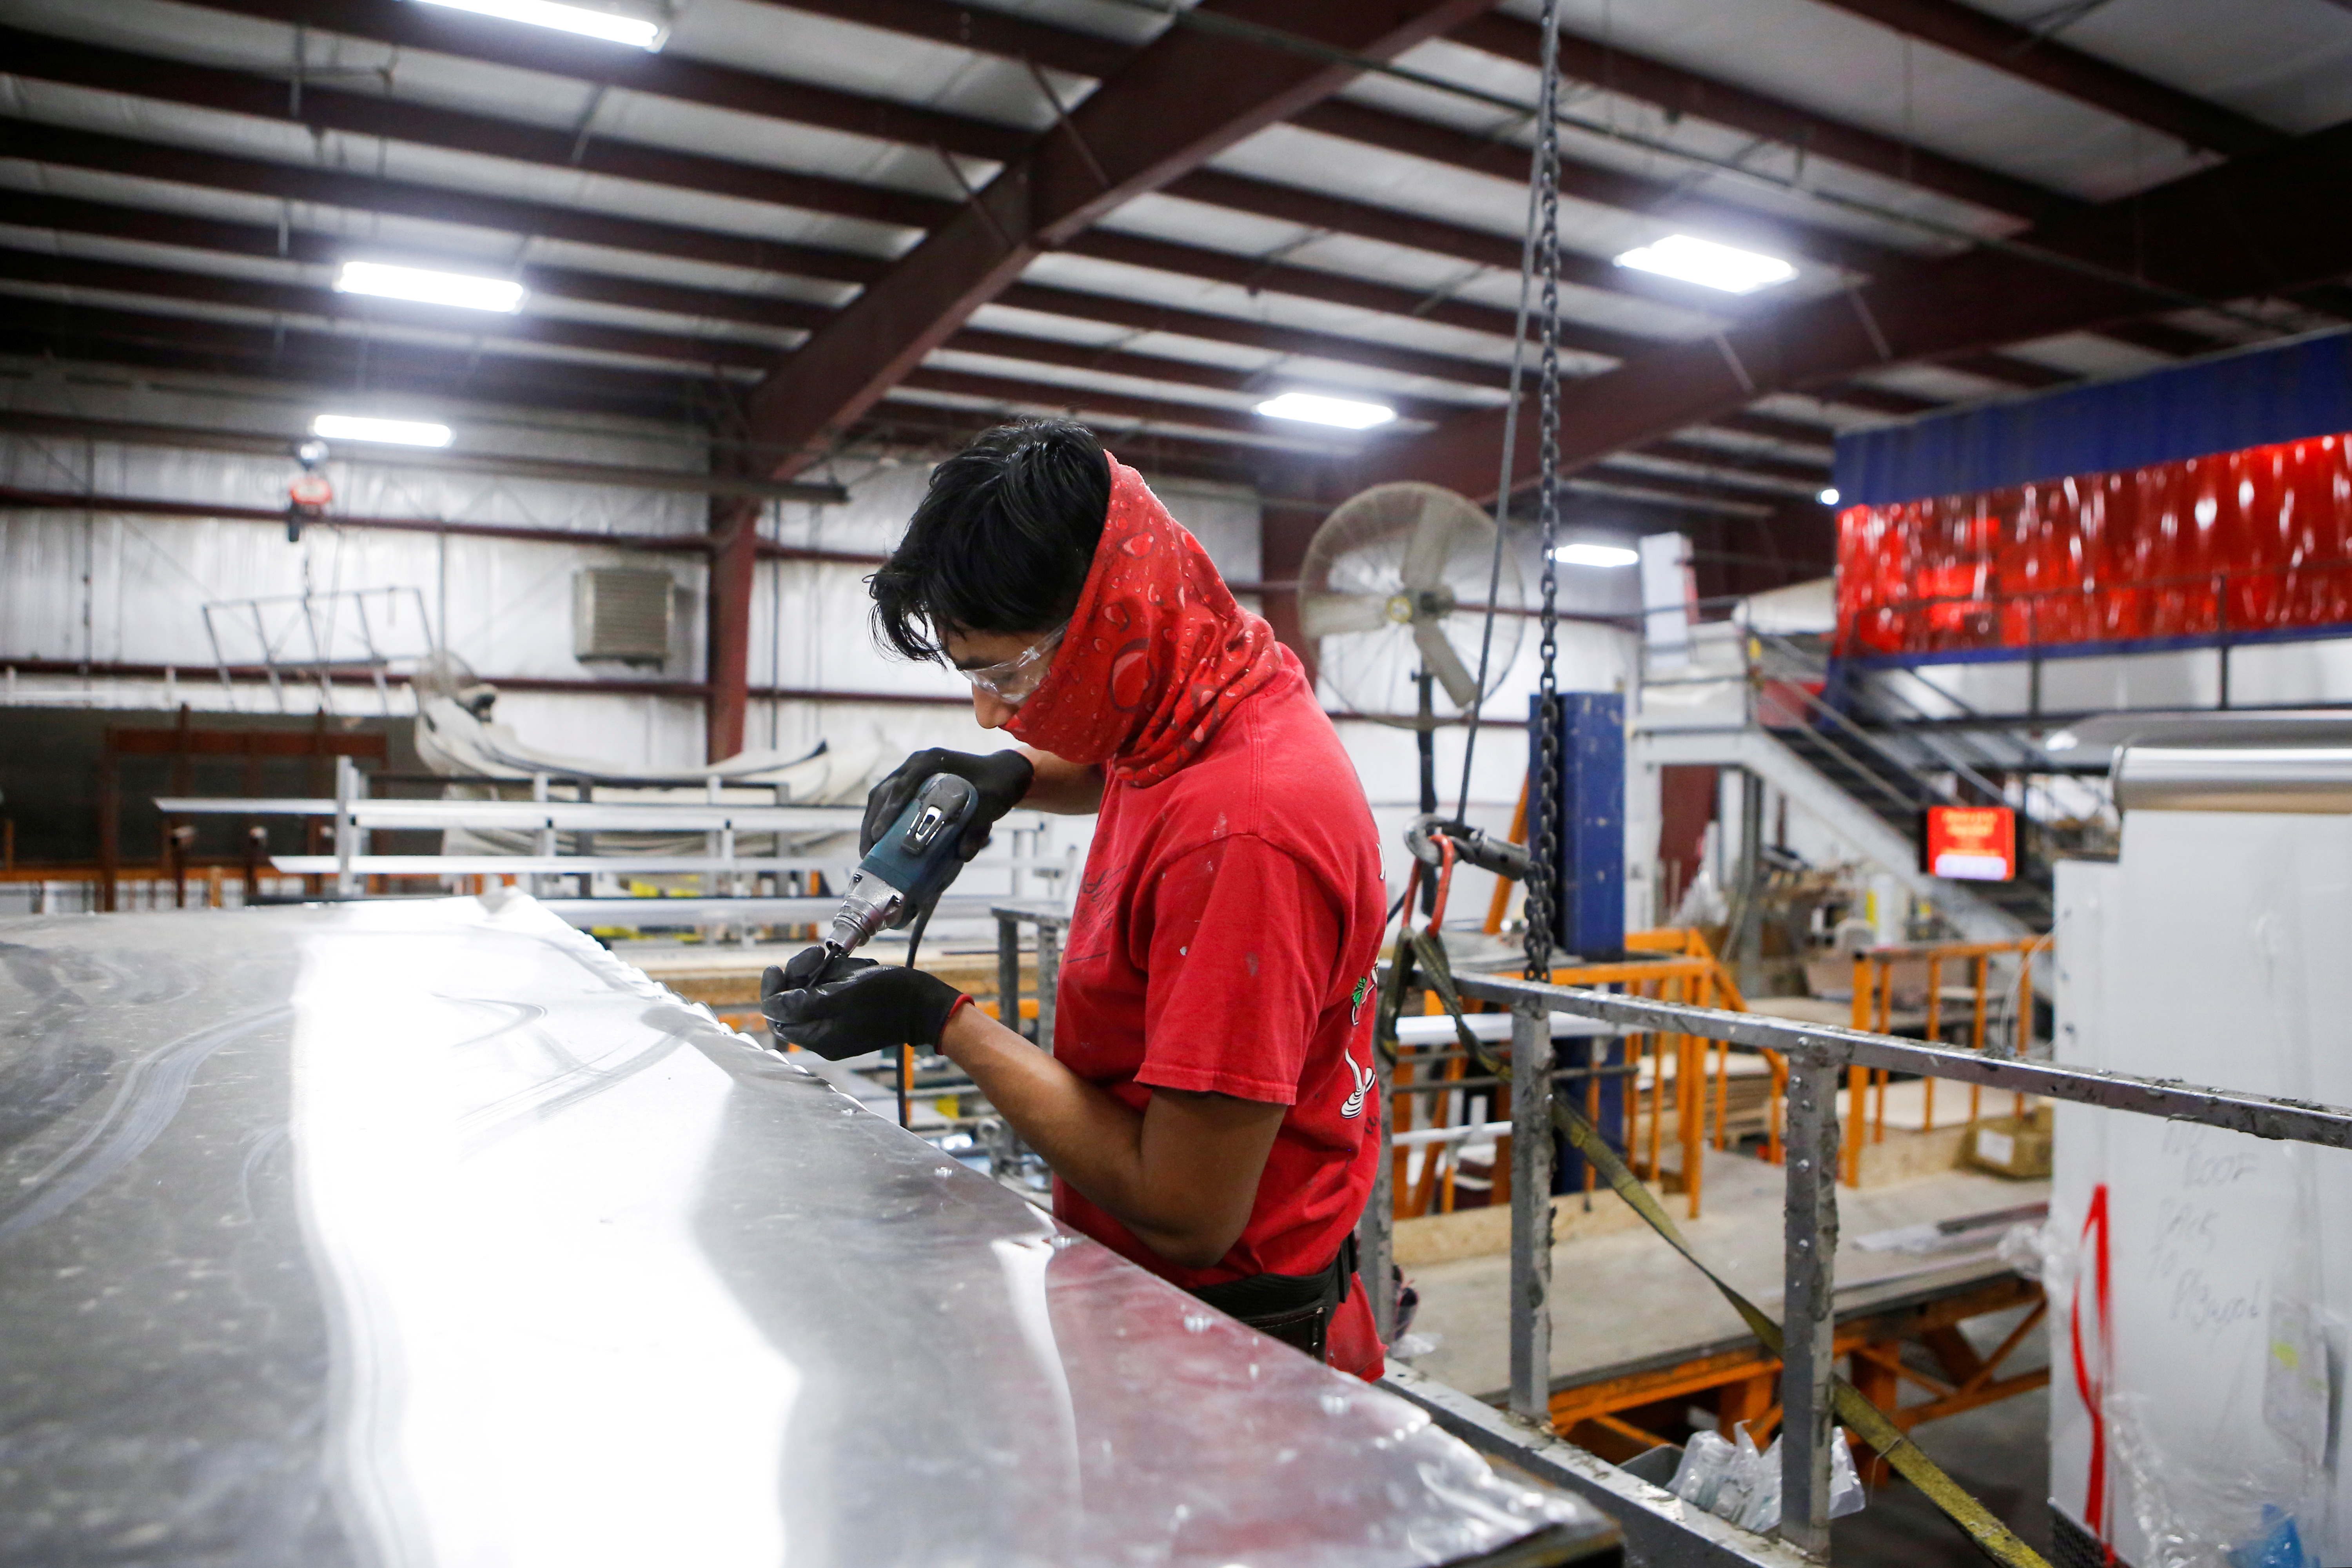 Hector Torres installs an aluminium roof at Look Trailers cargo trailer manufacturing facility in Middlebury, Indiana, U.S., April 1, 2021. Picture taken April 1, 2021.  REUTERS/Eileen T. Meslar